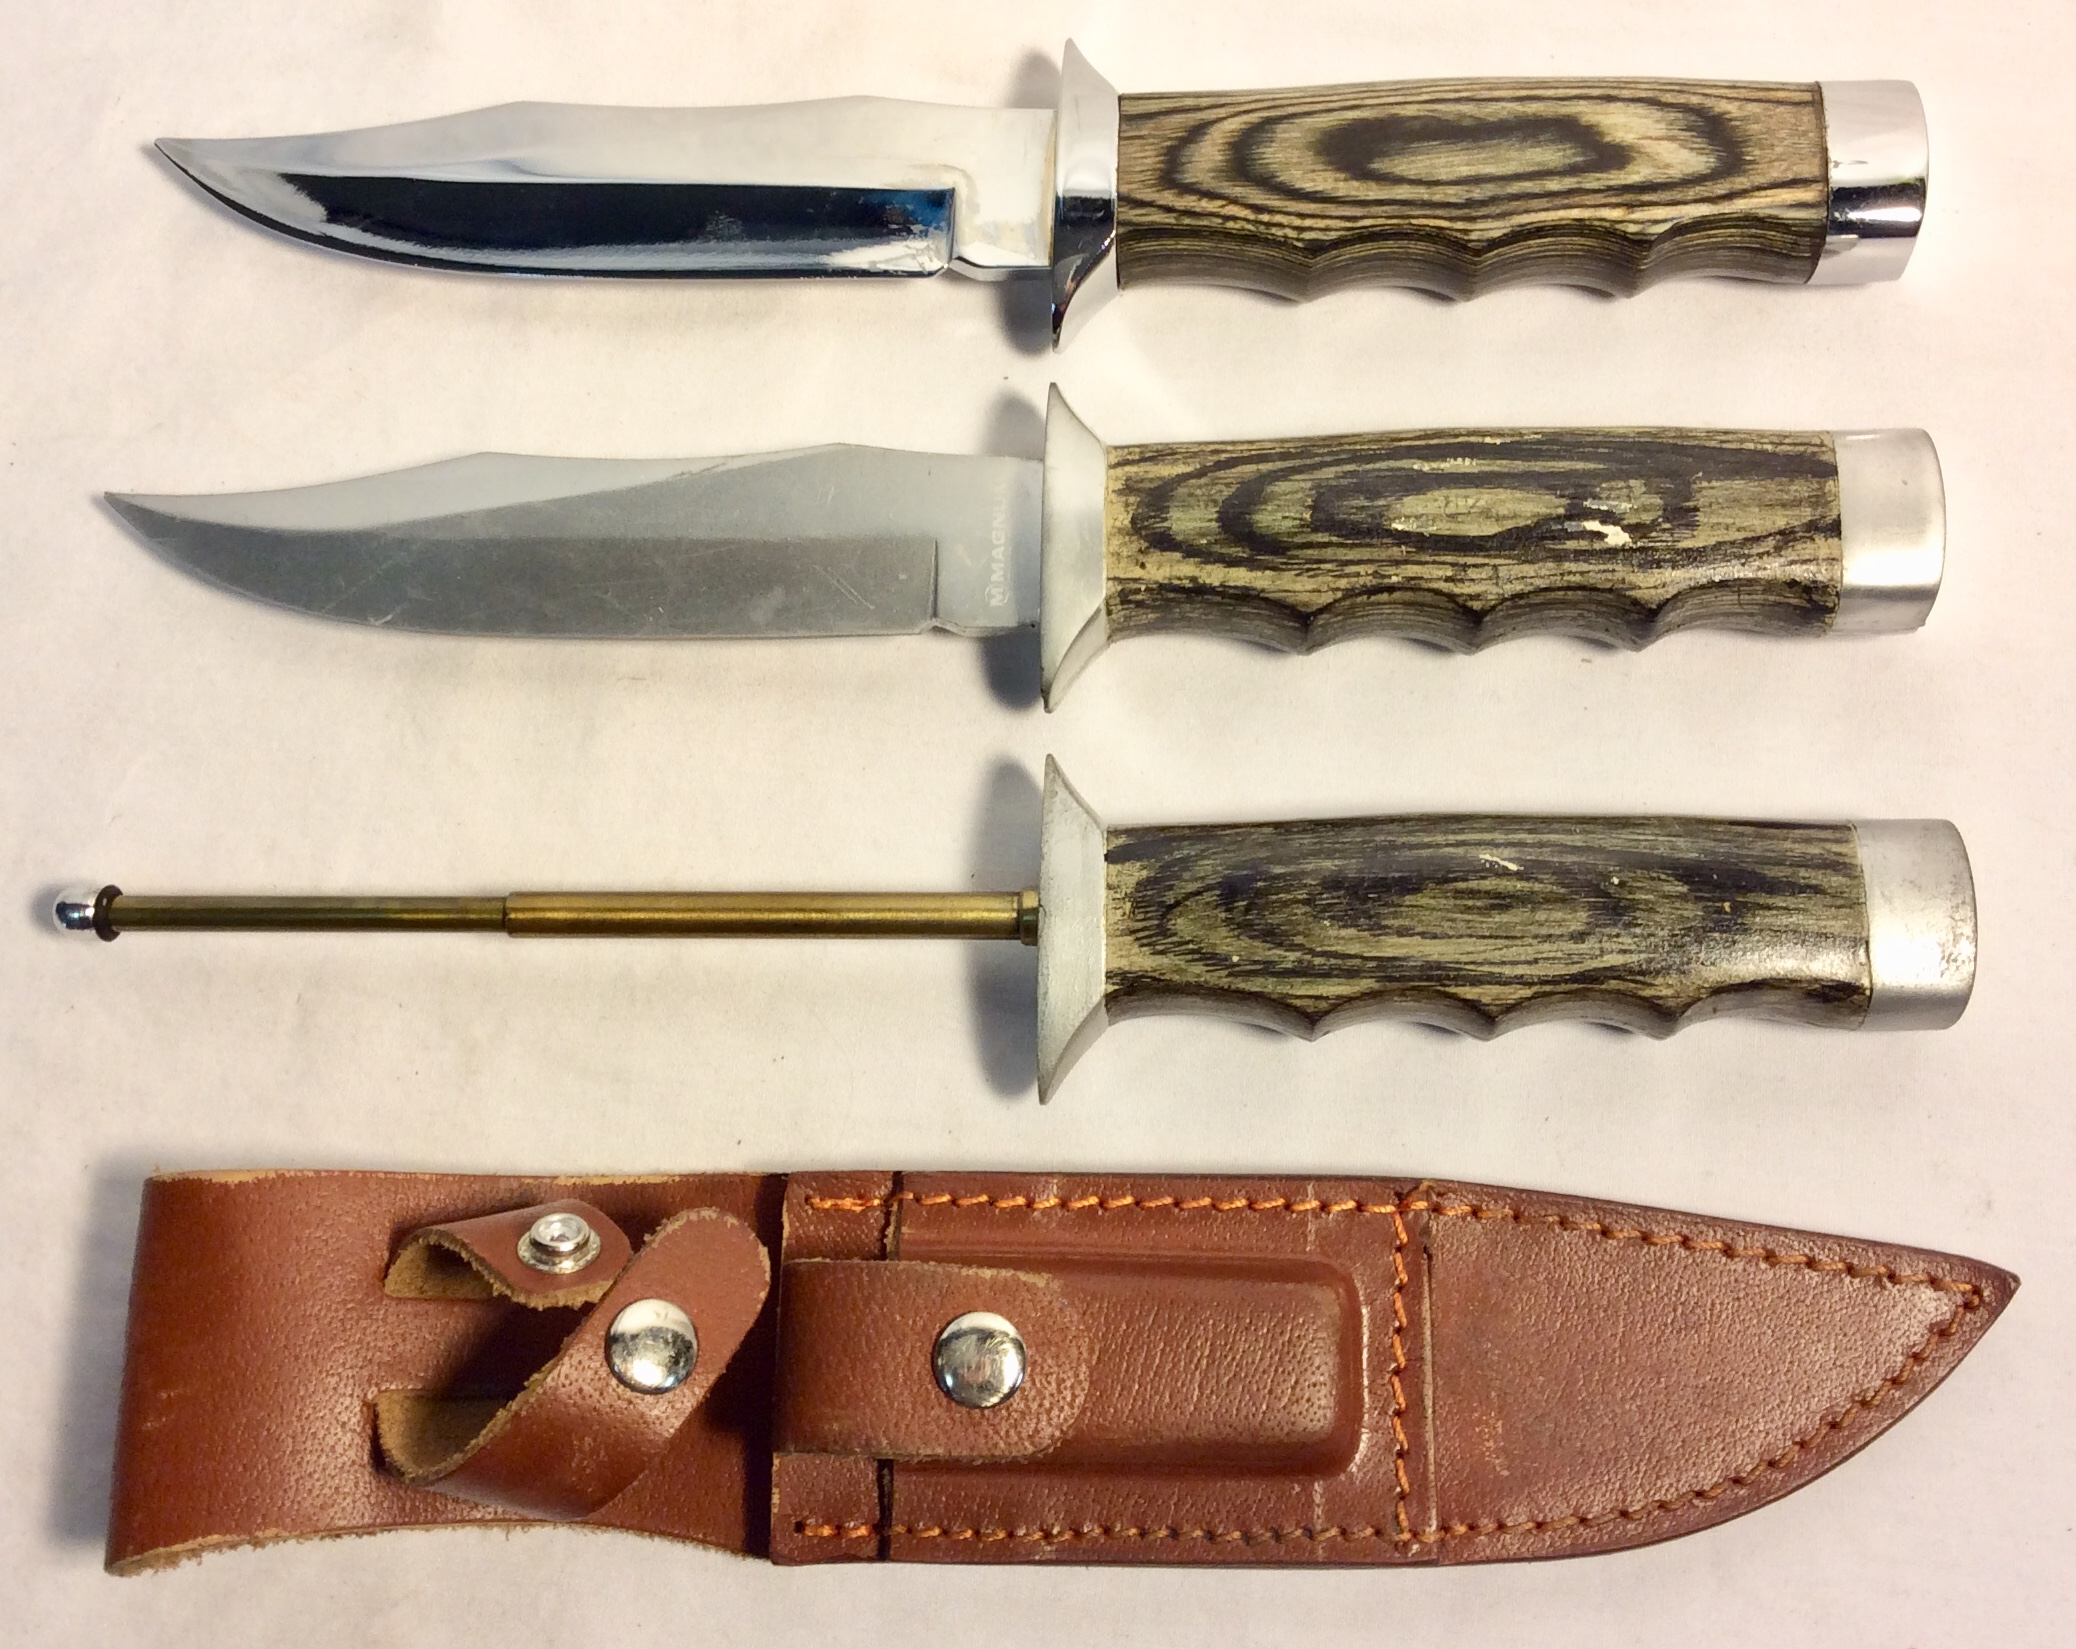 Small hunt knife with wooden handle x3 rubber (one blood stained) x2 real x2 VFX